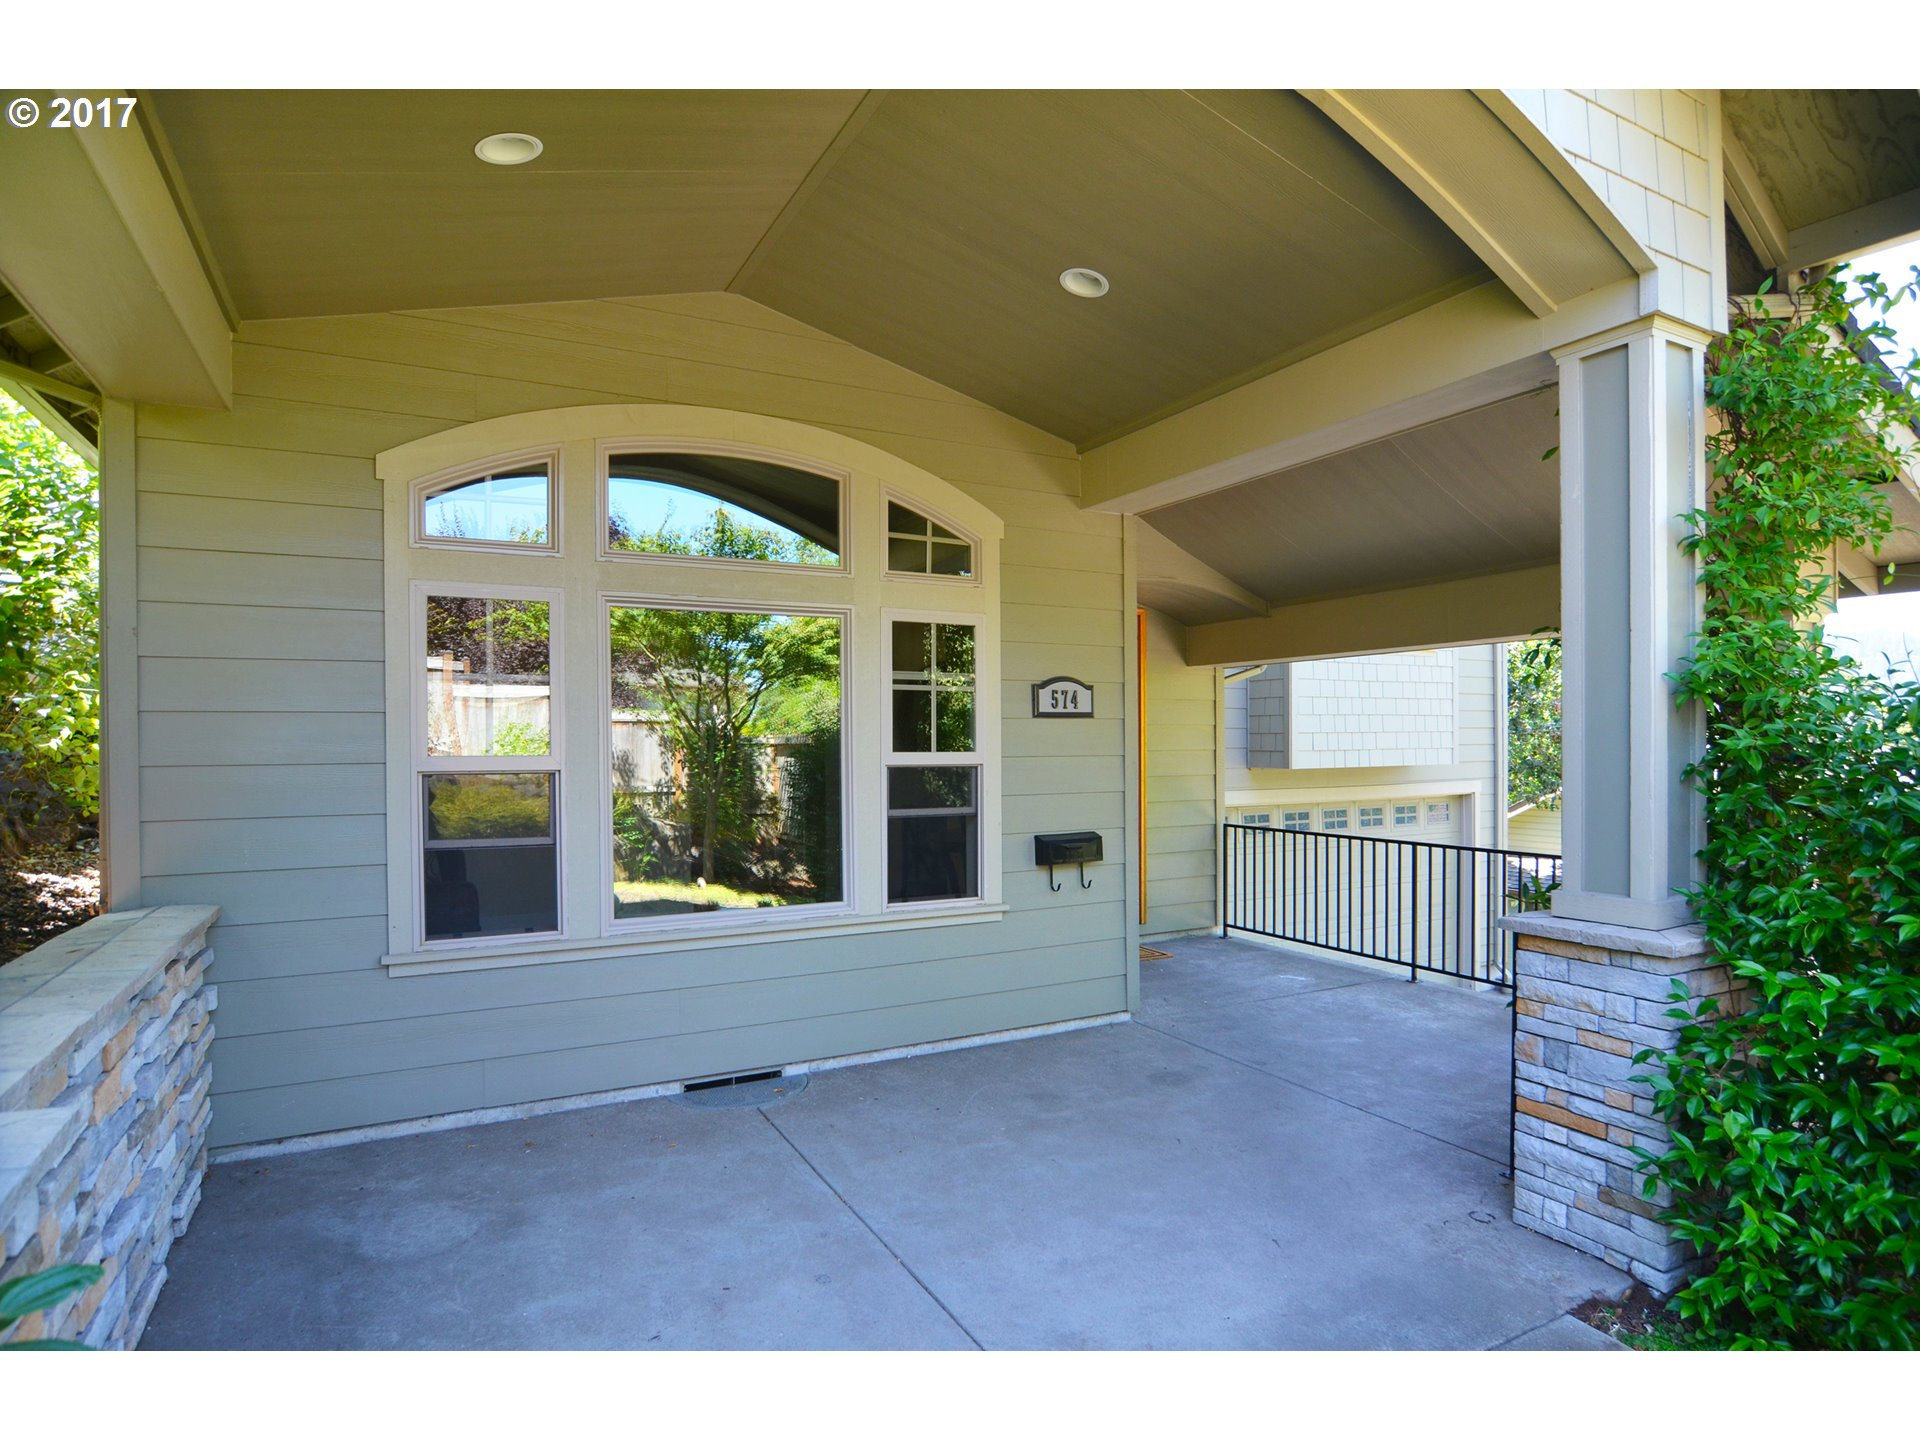 574 W 26TH AVE, Eugene OR 97405